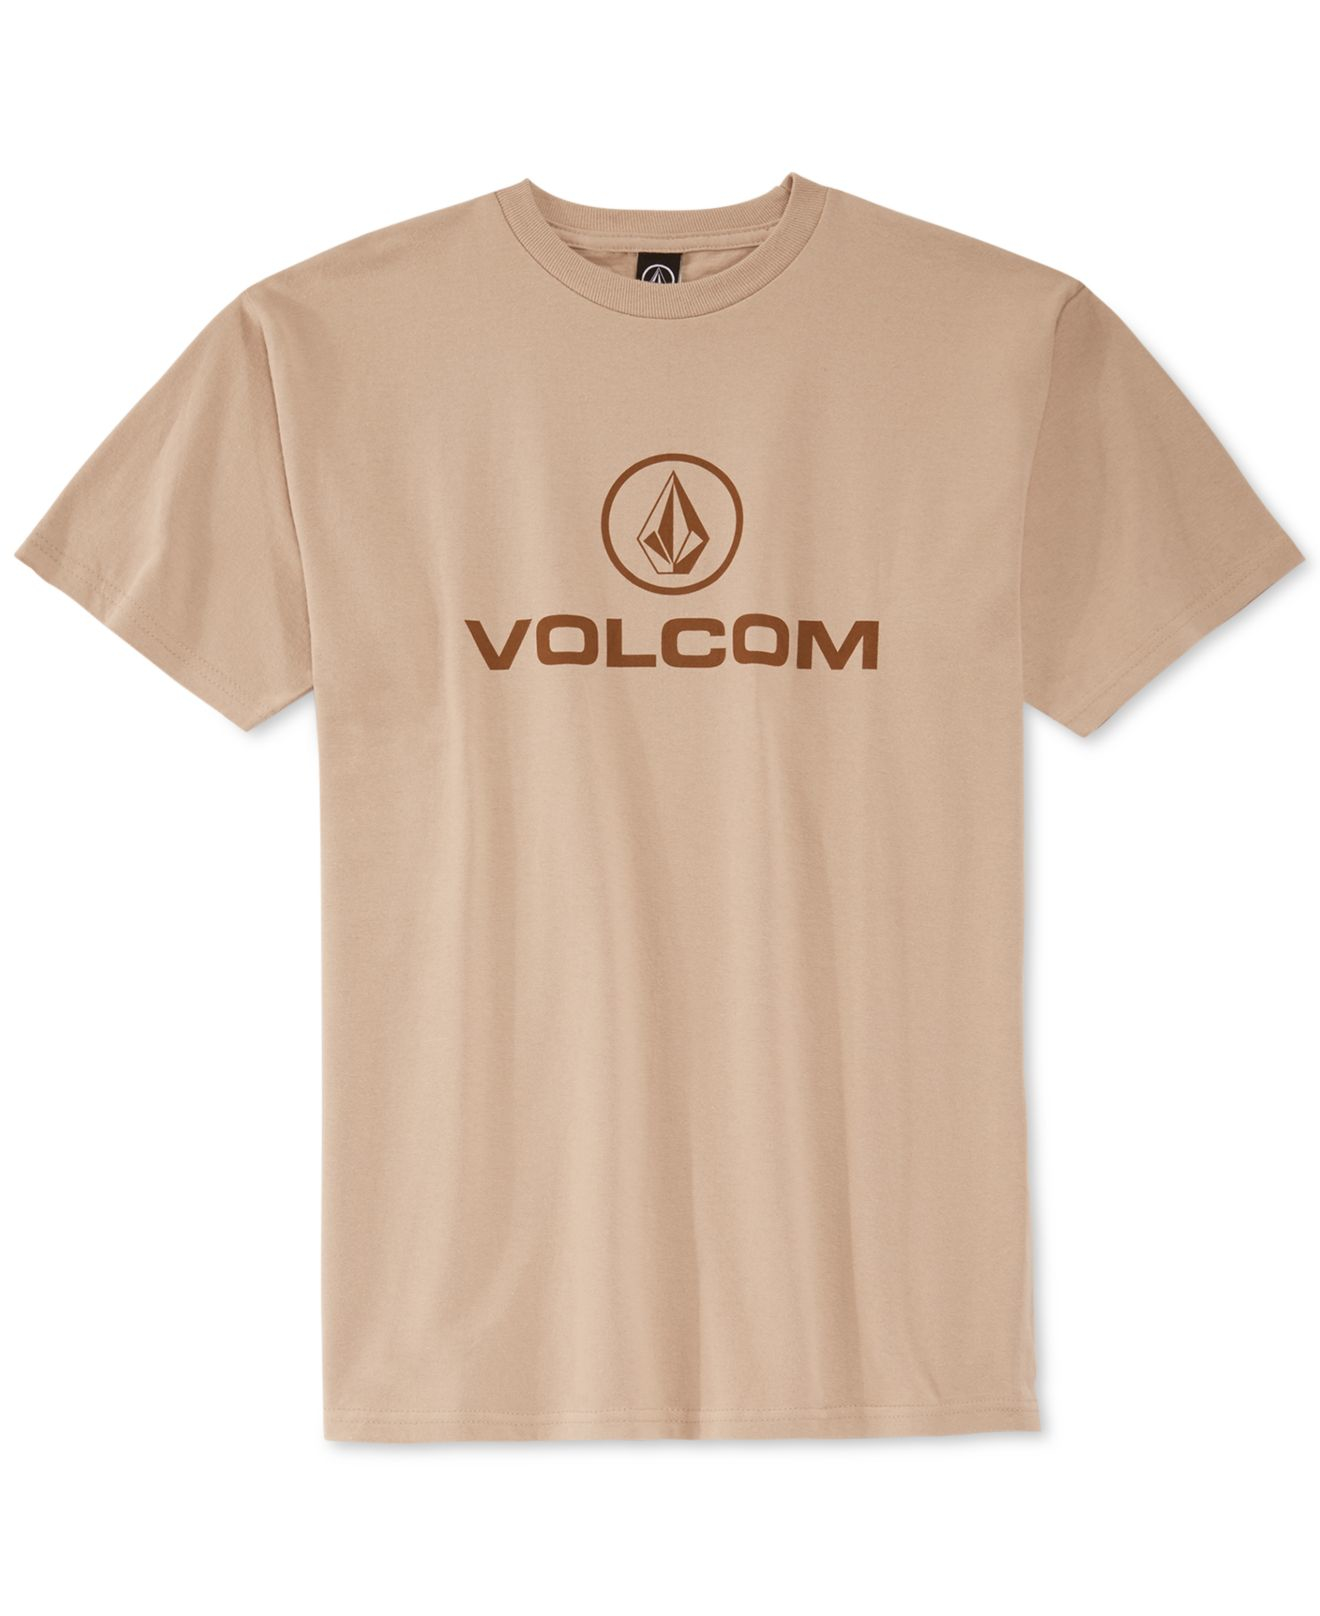 Lyst Volcom Wordmark Graphic Print Logo T Shirt In